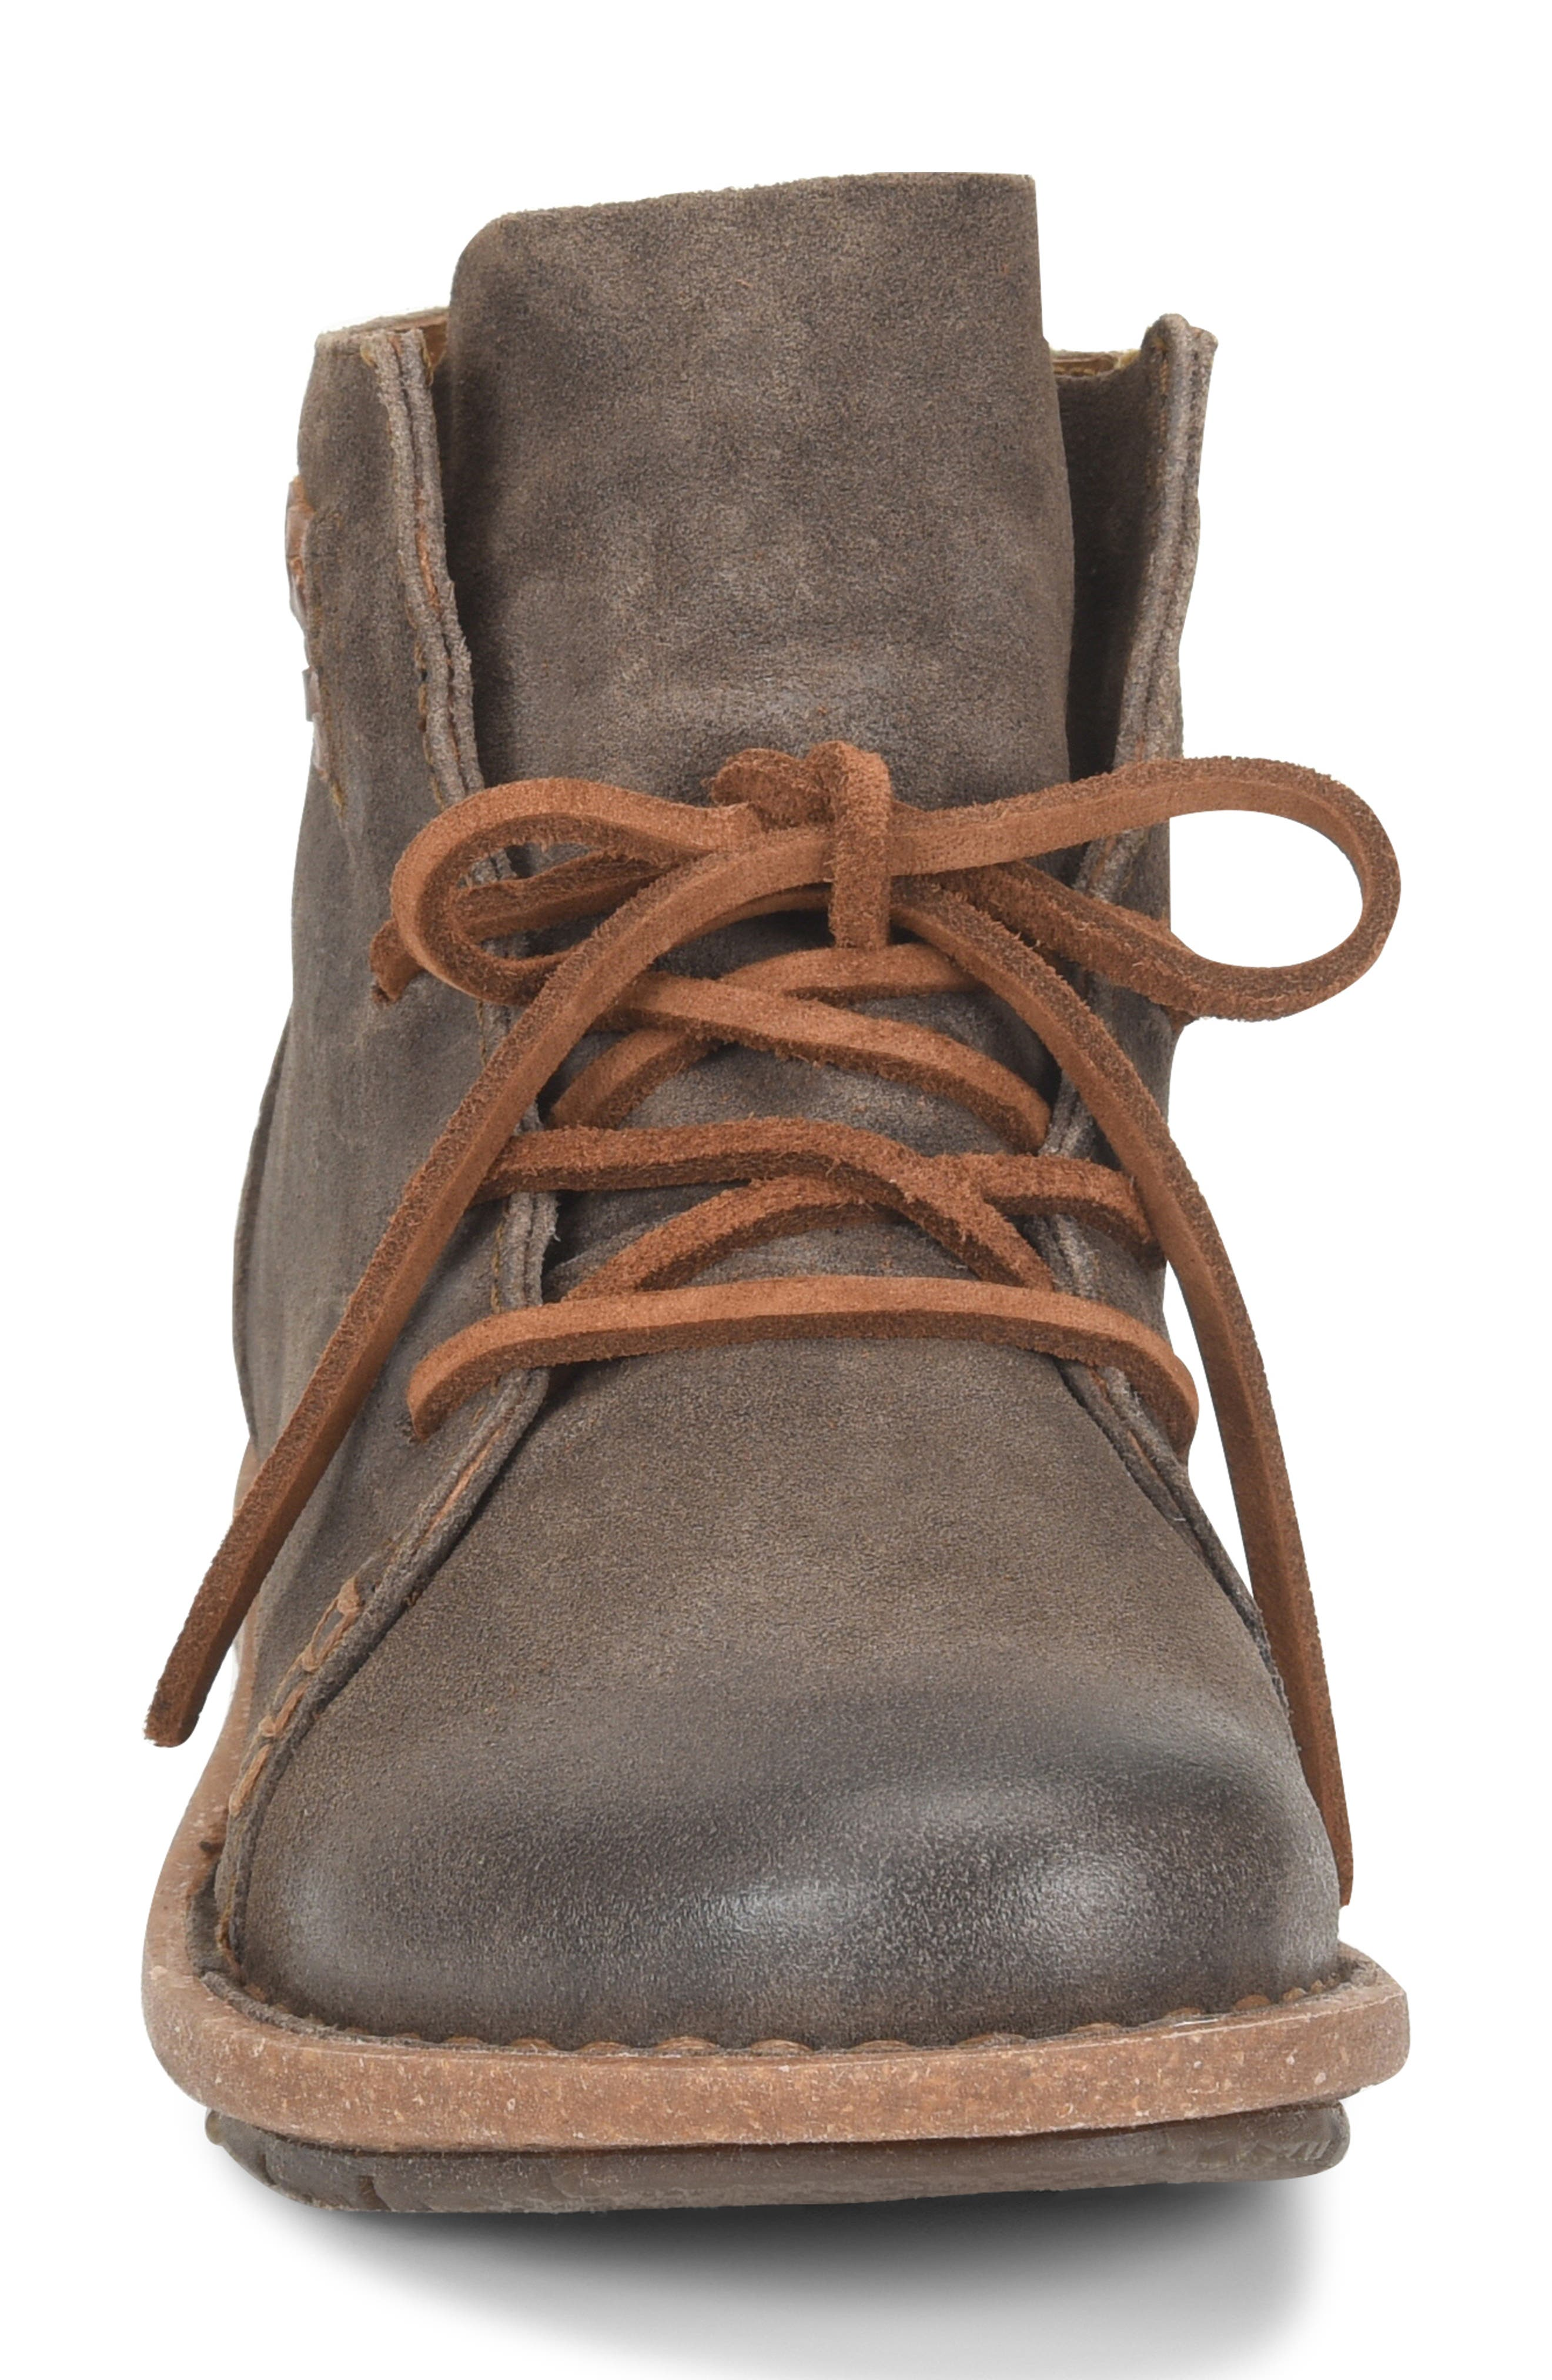 Temple Bootie,                             Alternate thumbnail 4, color,                             TAUPE DISTRESSED LEATHER